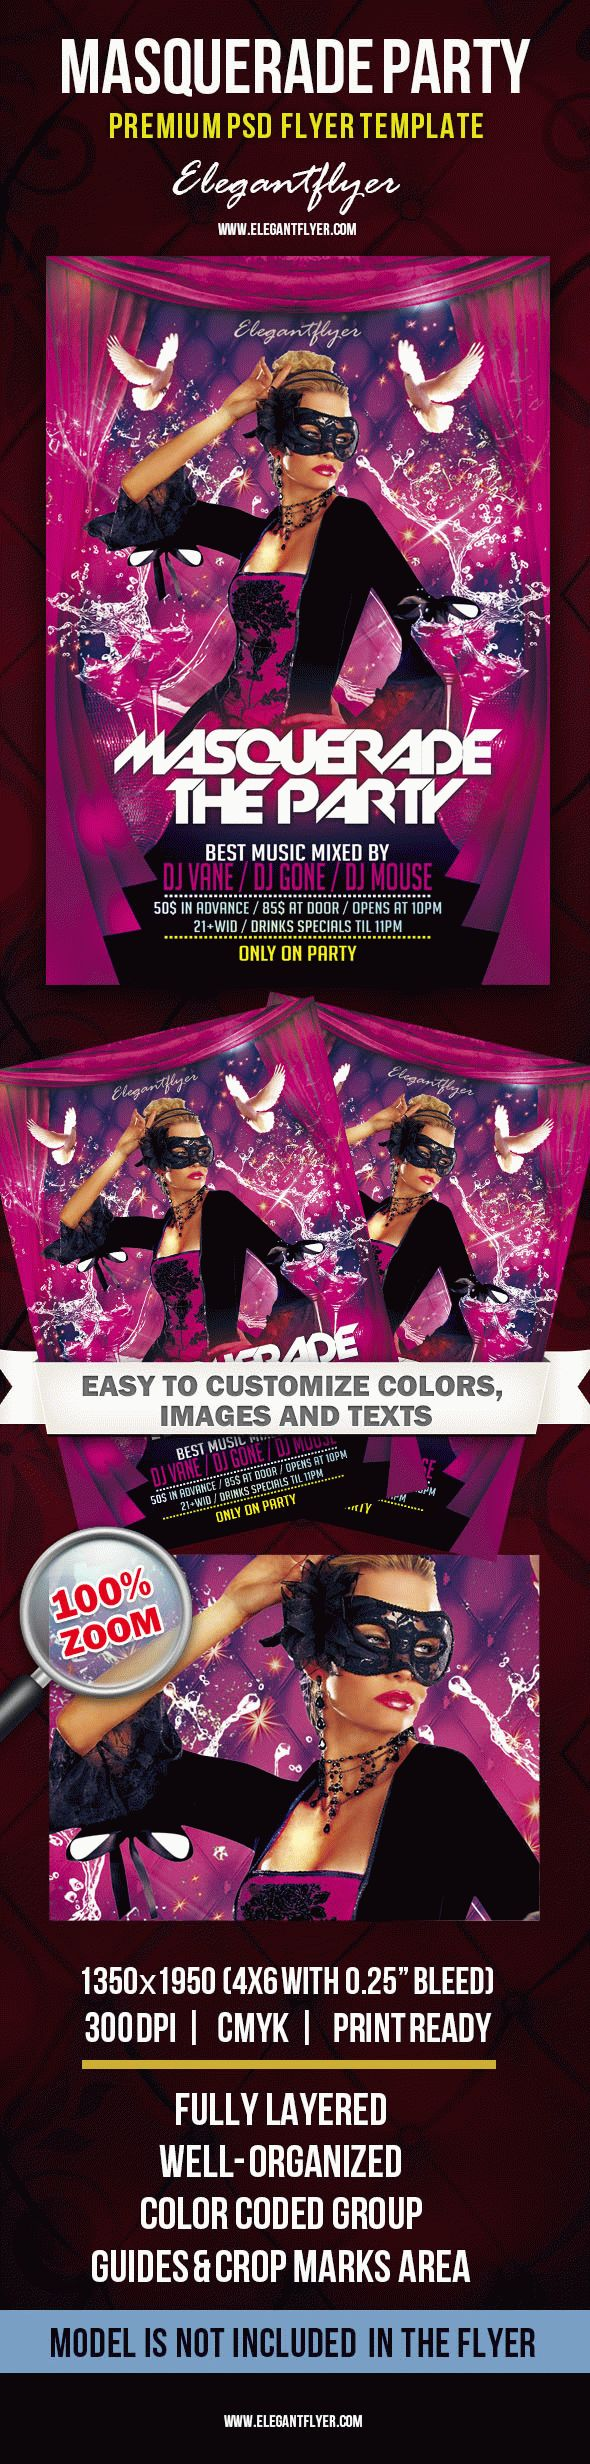 Masquerade Party – Premium Club flyer PSD Template